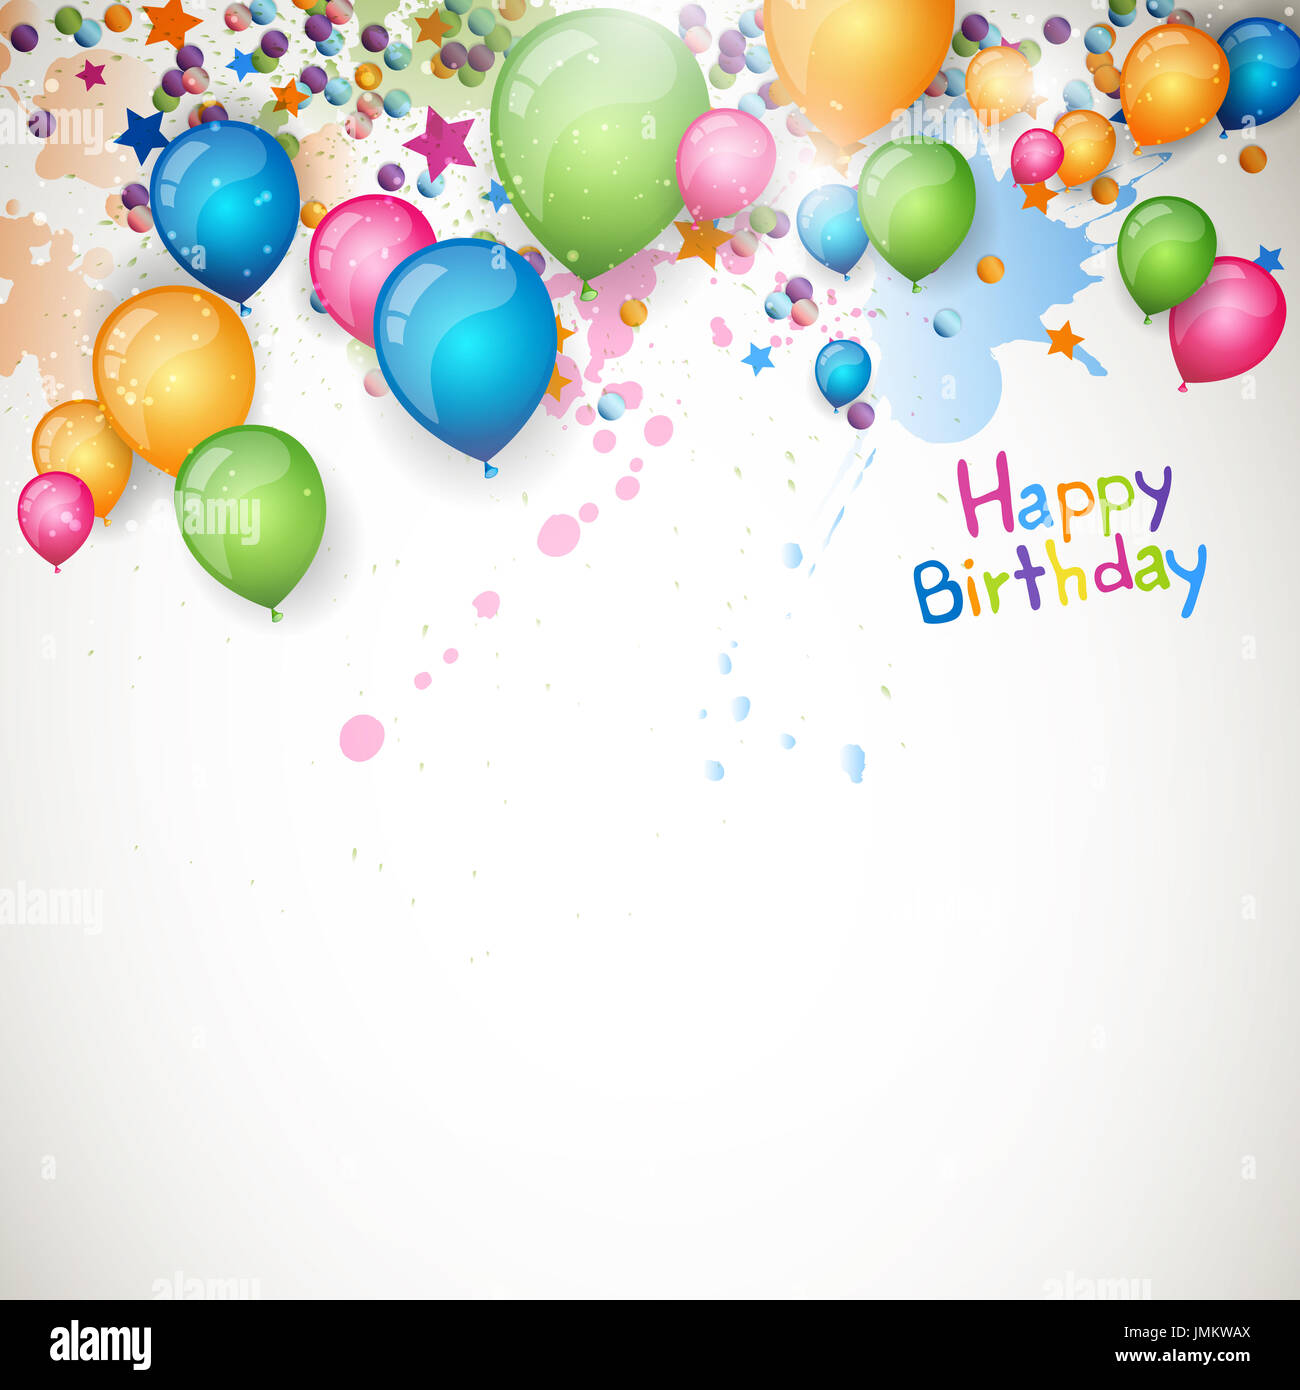 Happy Birthday Greeting Card Background Vector Illustration Photos